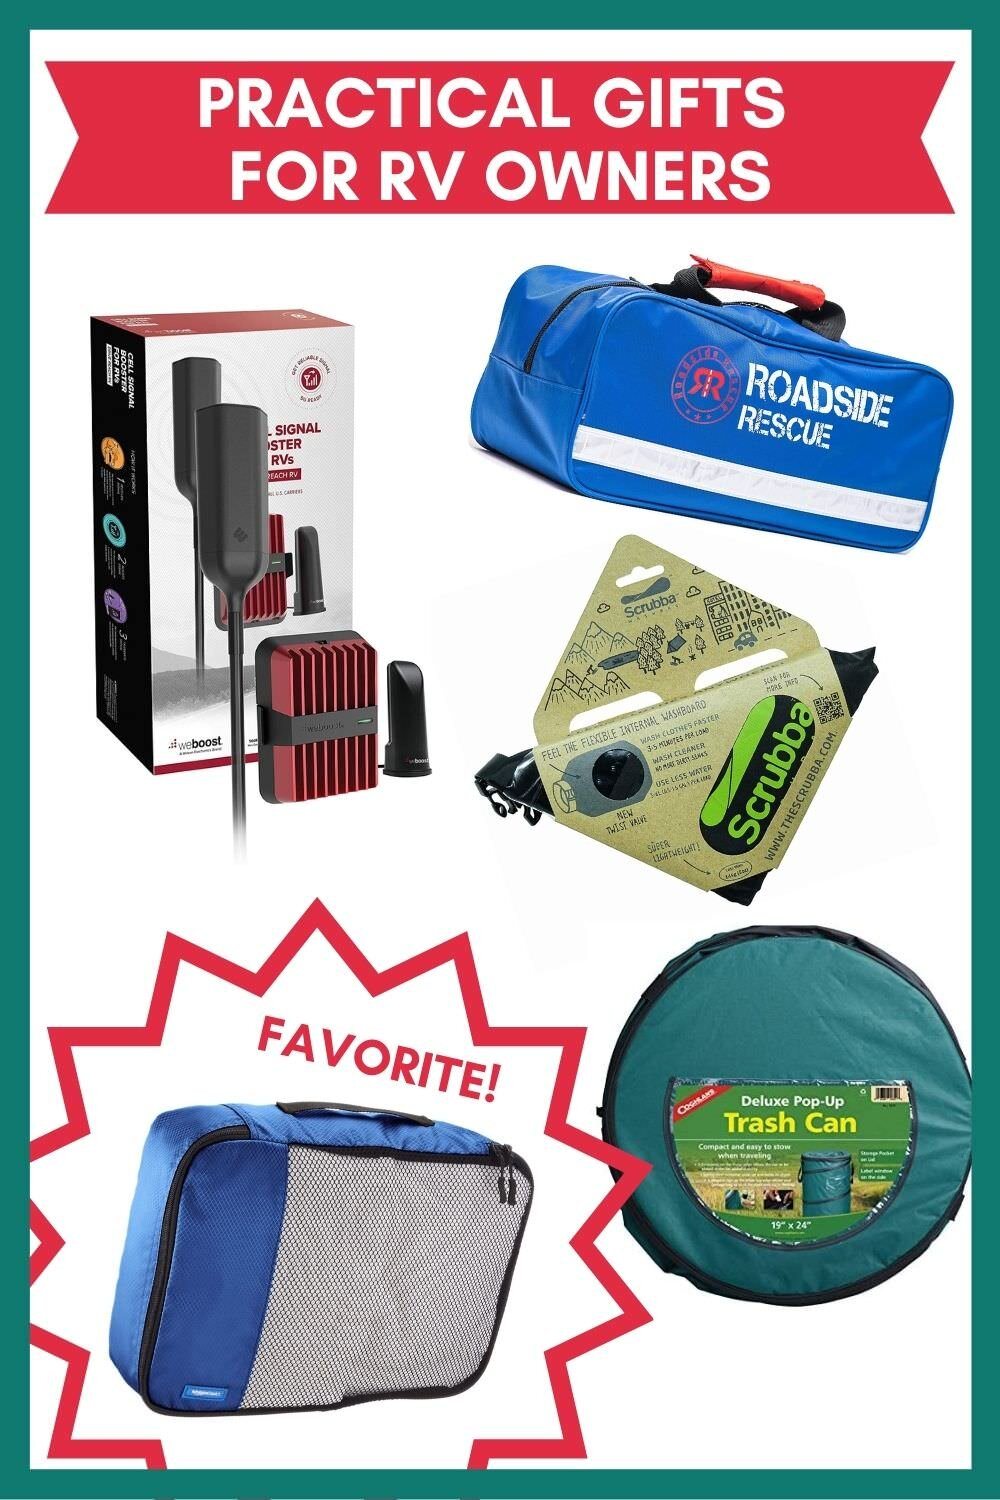 Practical gifts for motorhome owners.